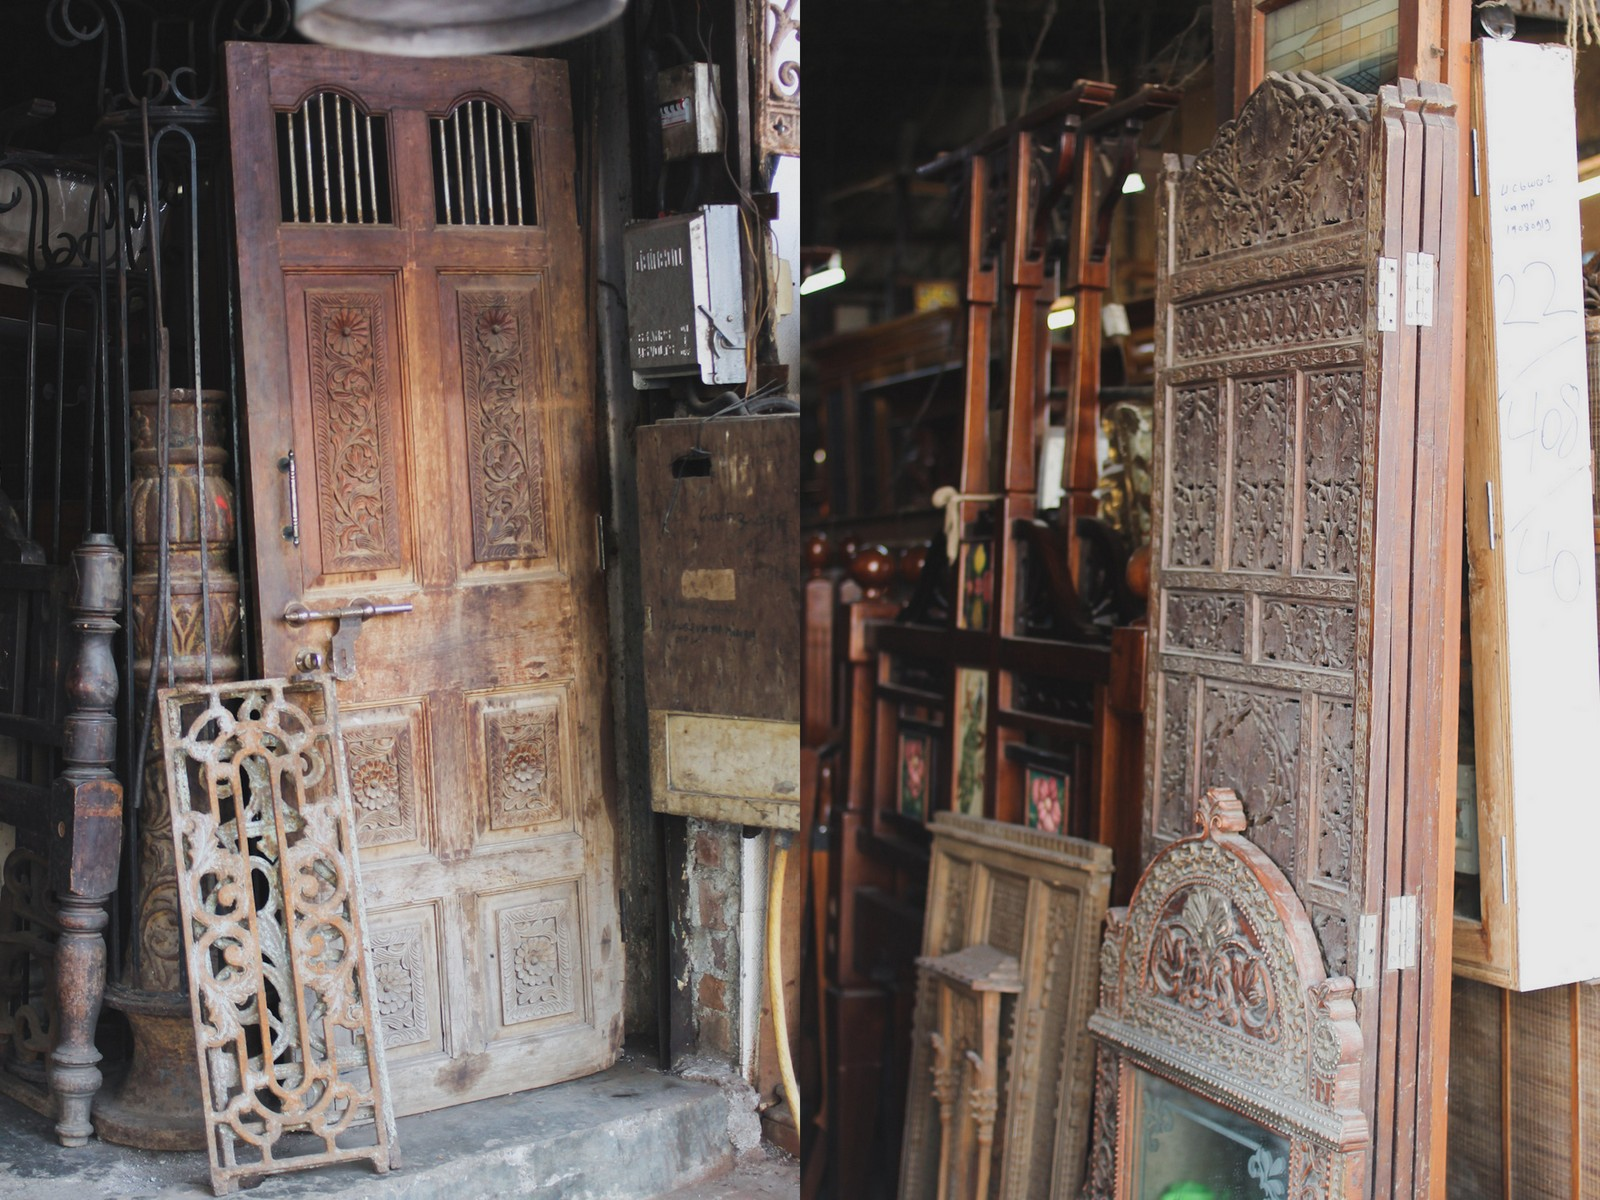 Oshiwara Antique Market In Jogeshwari